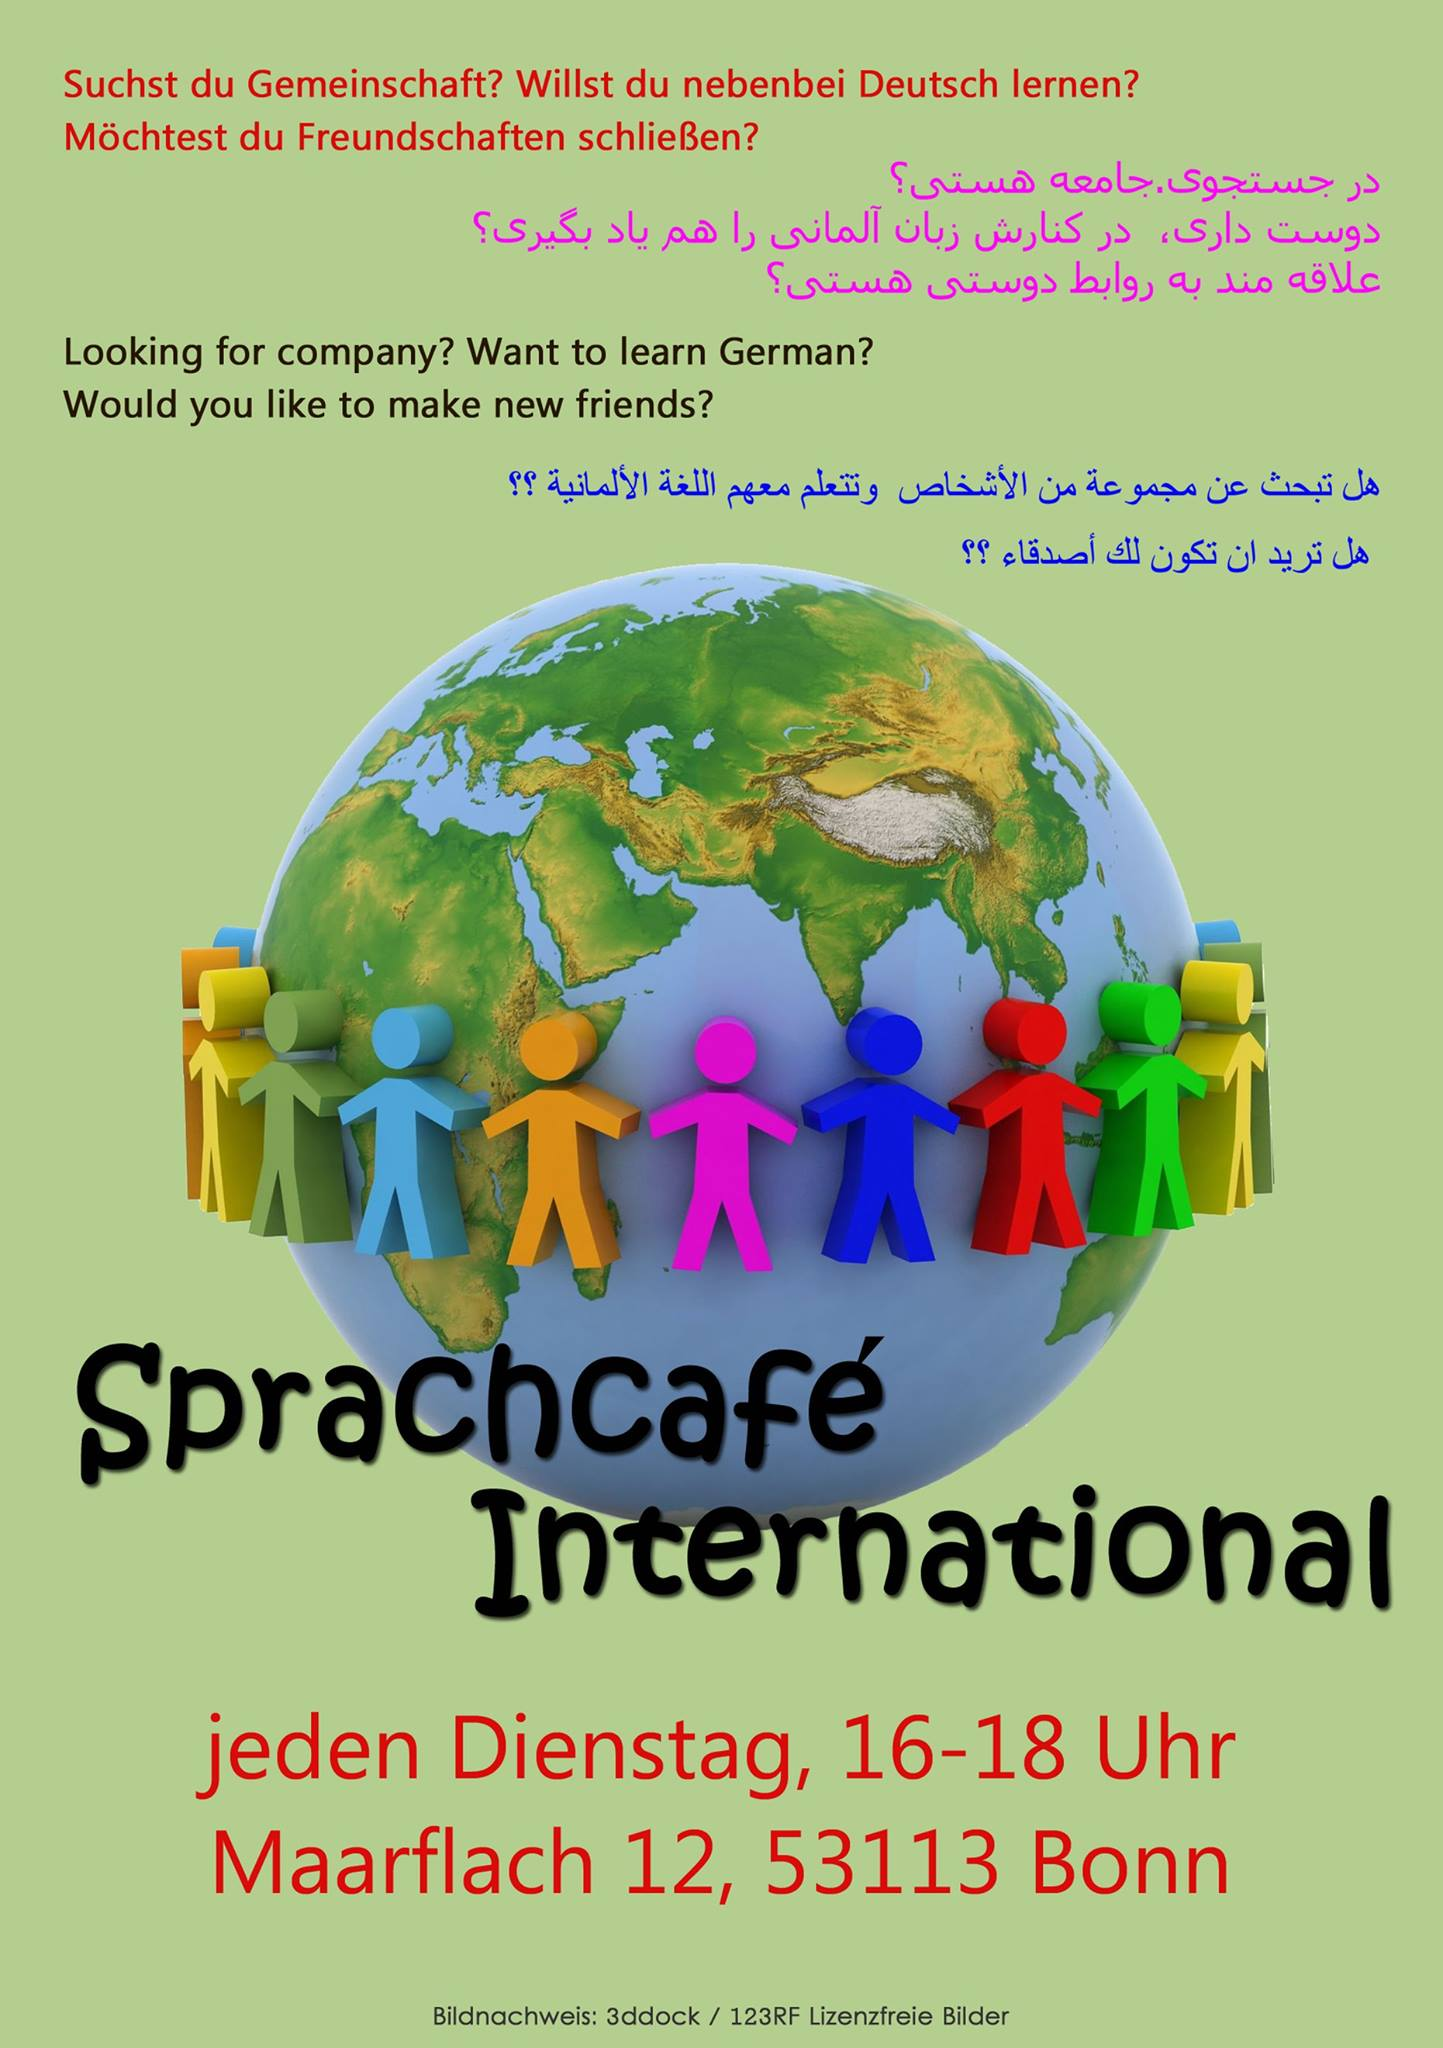 Sprachcafé International